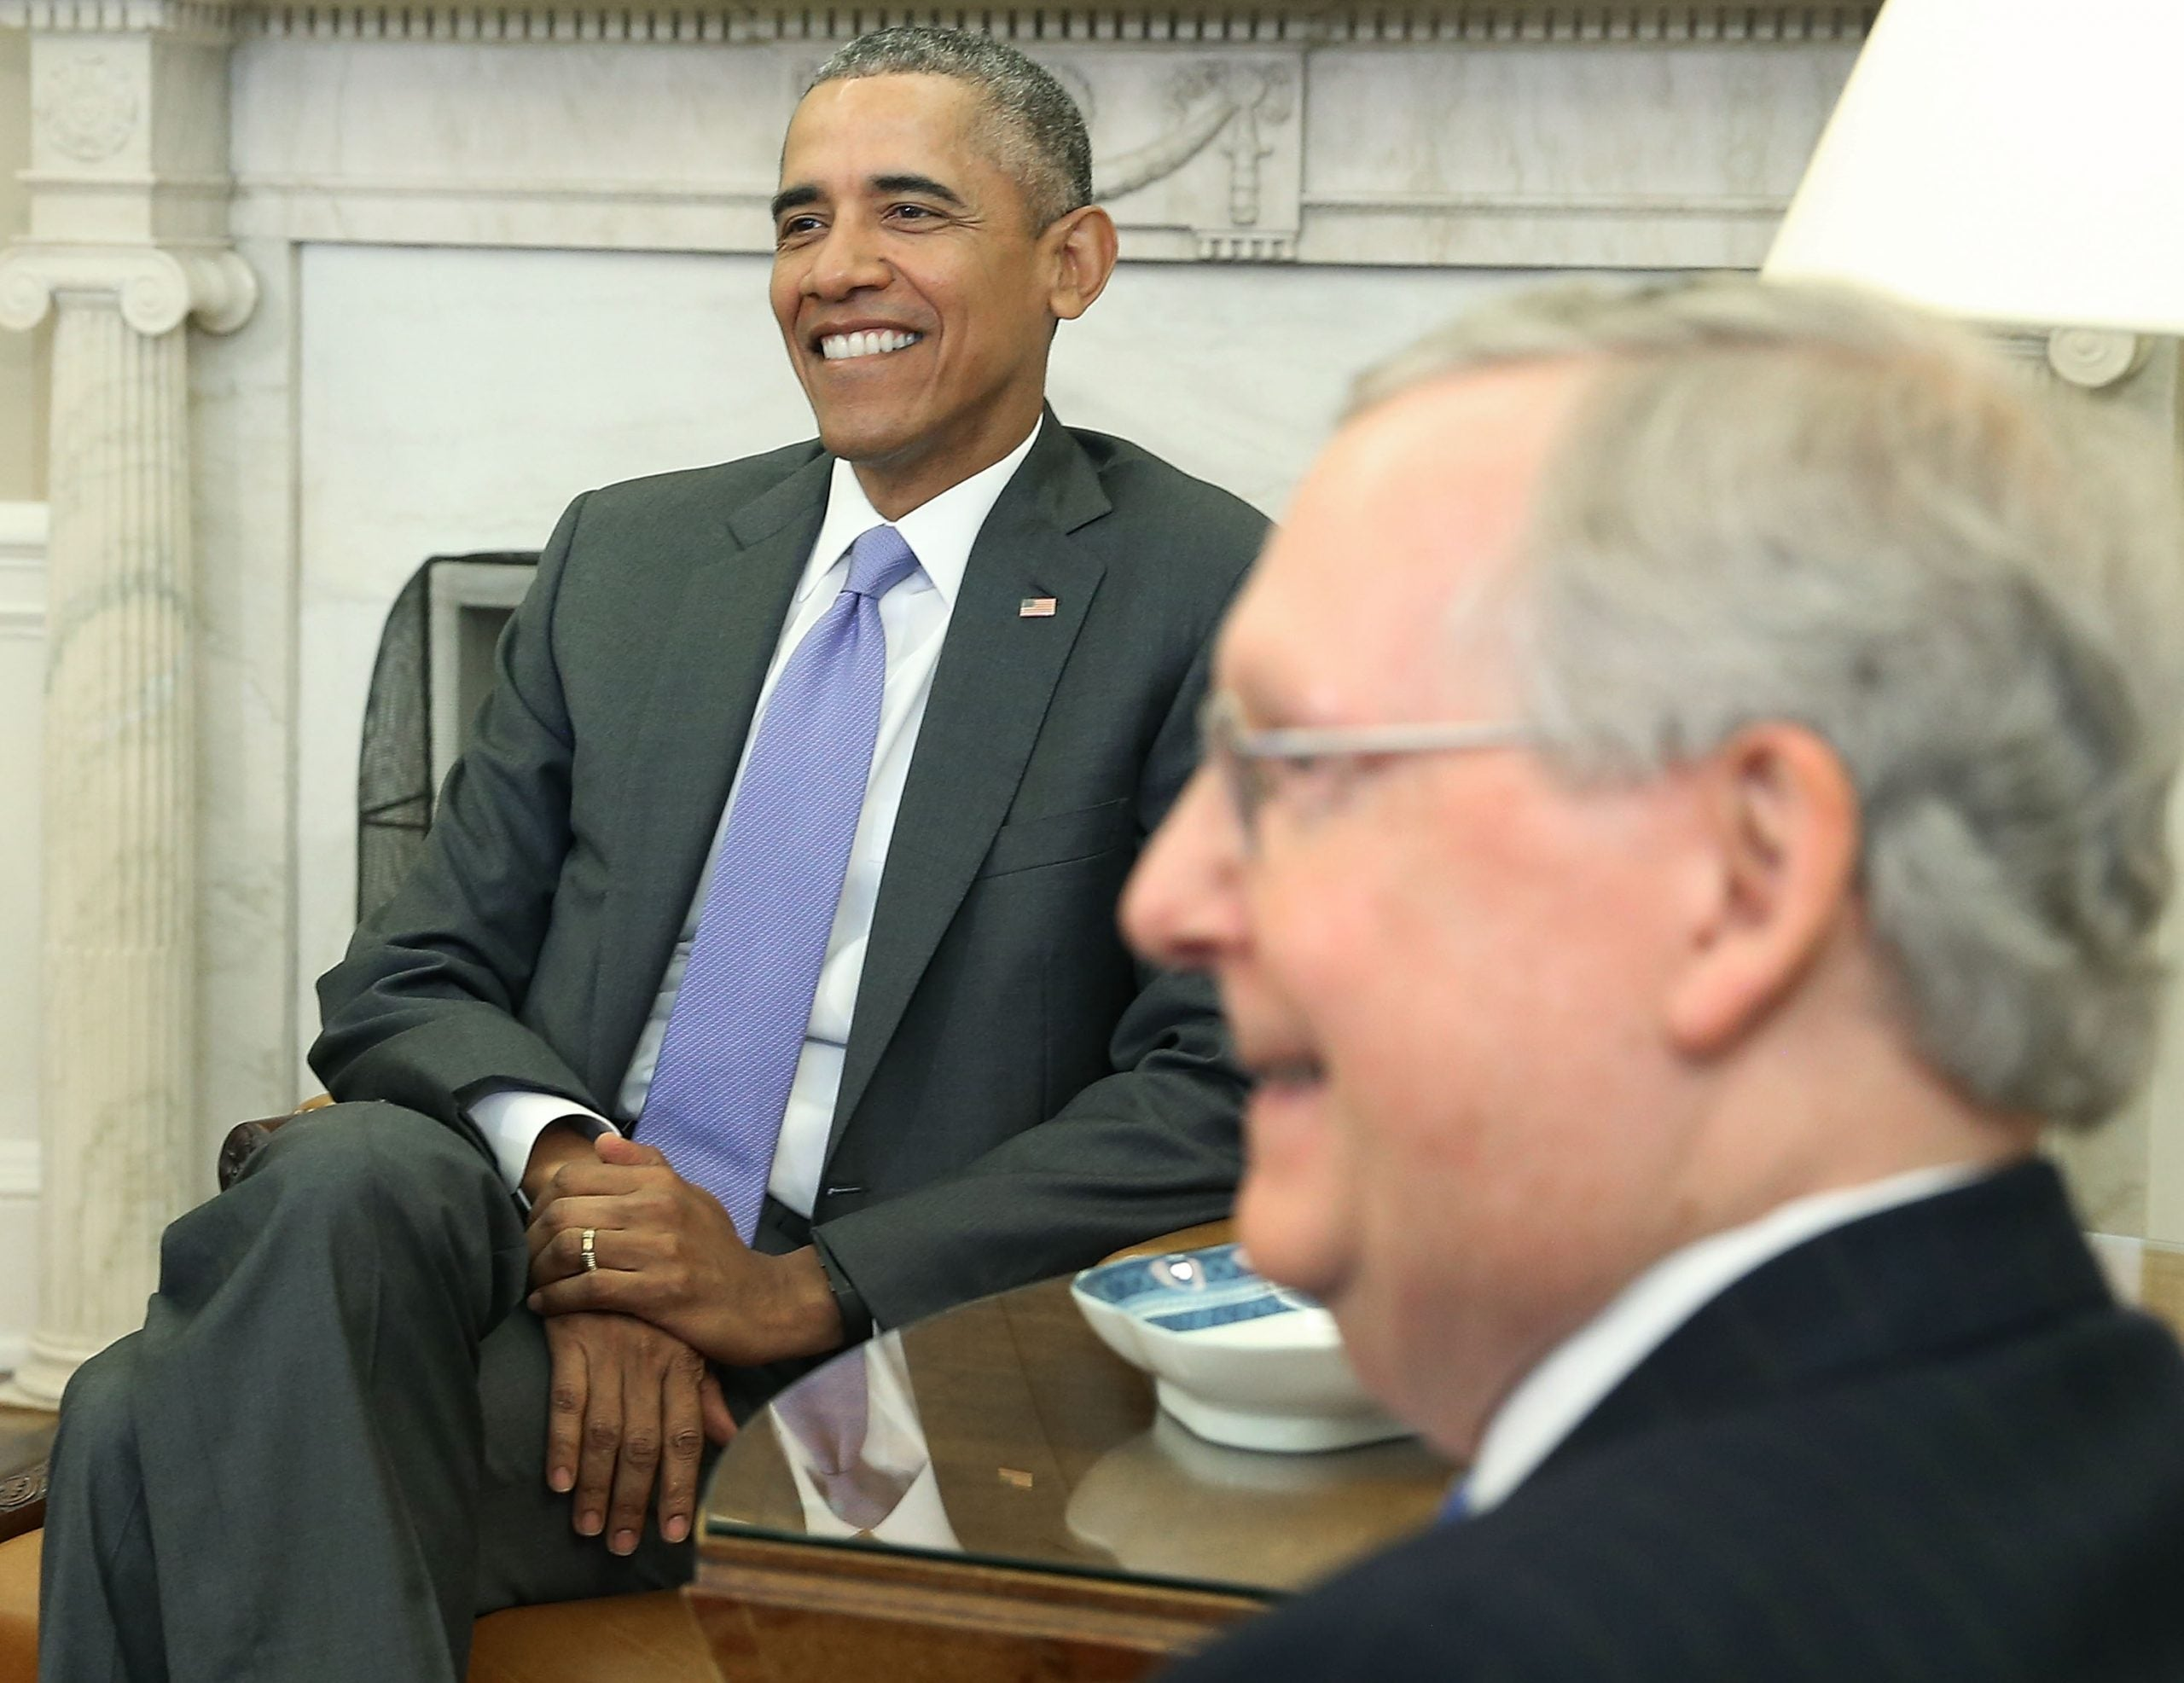 Mitch McConnell and Barack Obama. The Kentucky lawmaker admits he was wrong about the former president.